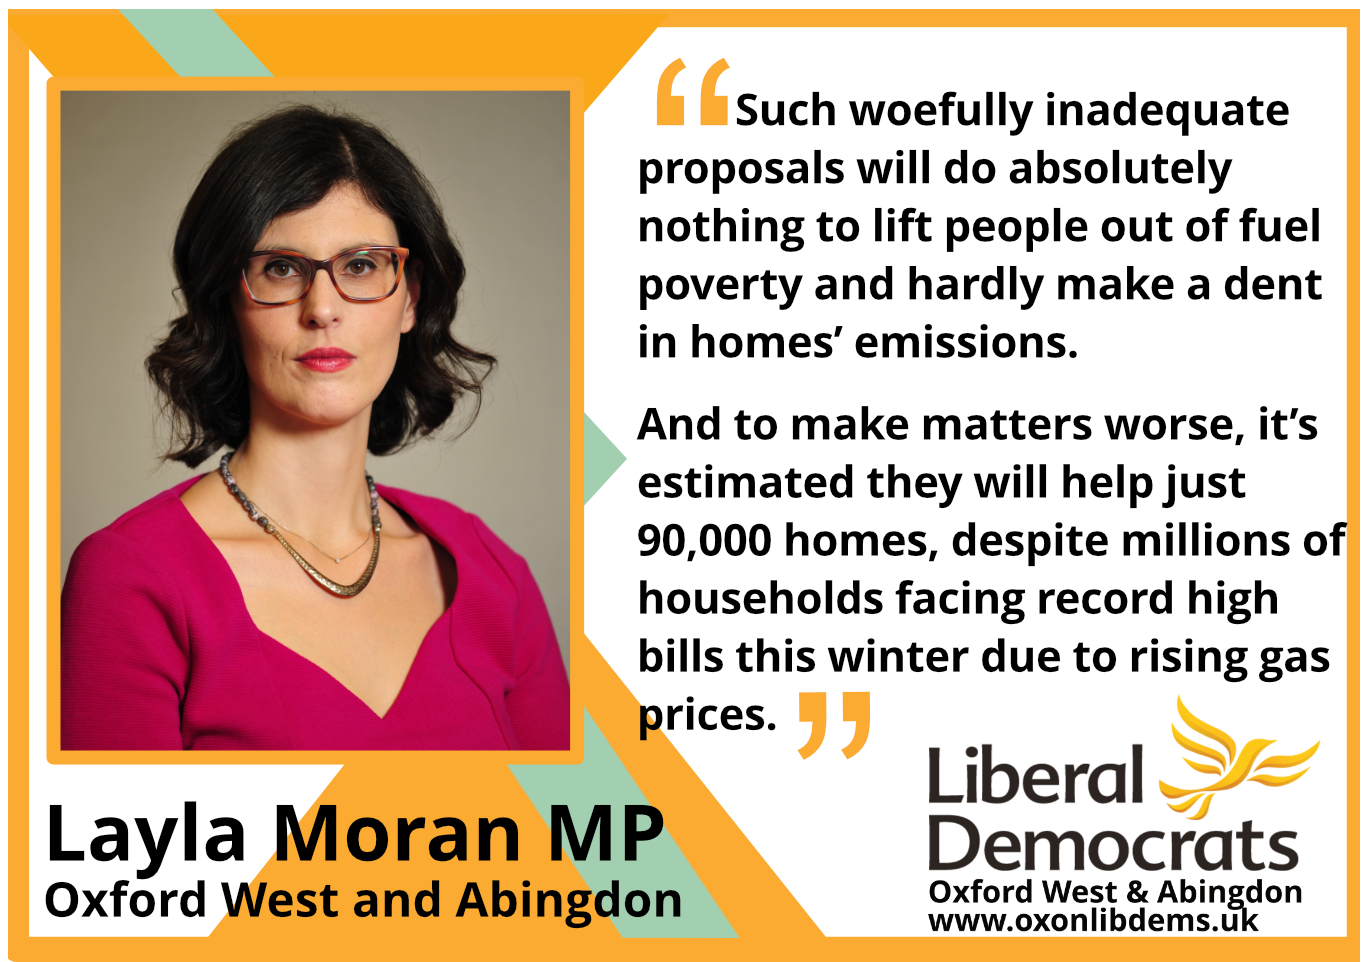 key_Such woefully inadequate proposals will do absolutely nothing to lift people out of fuel poverty and hardly make a dent in homes' emissions. And to make matters worse, it's estimated they will help just 90,000 homes, despite millions of households facing record high bills this winter due to rising gas prices